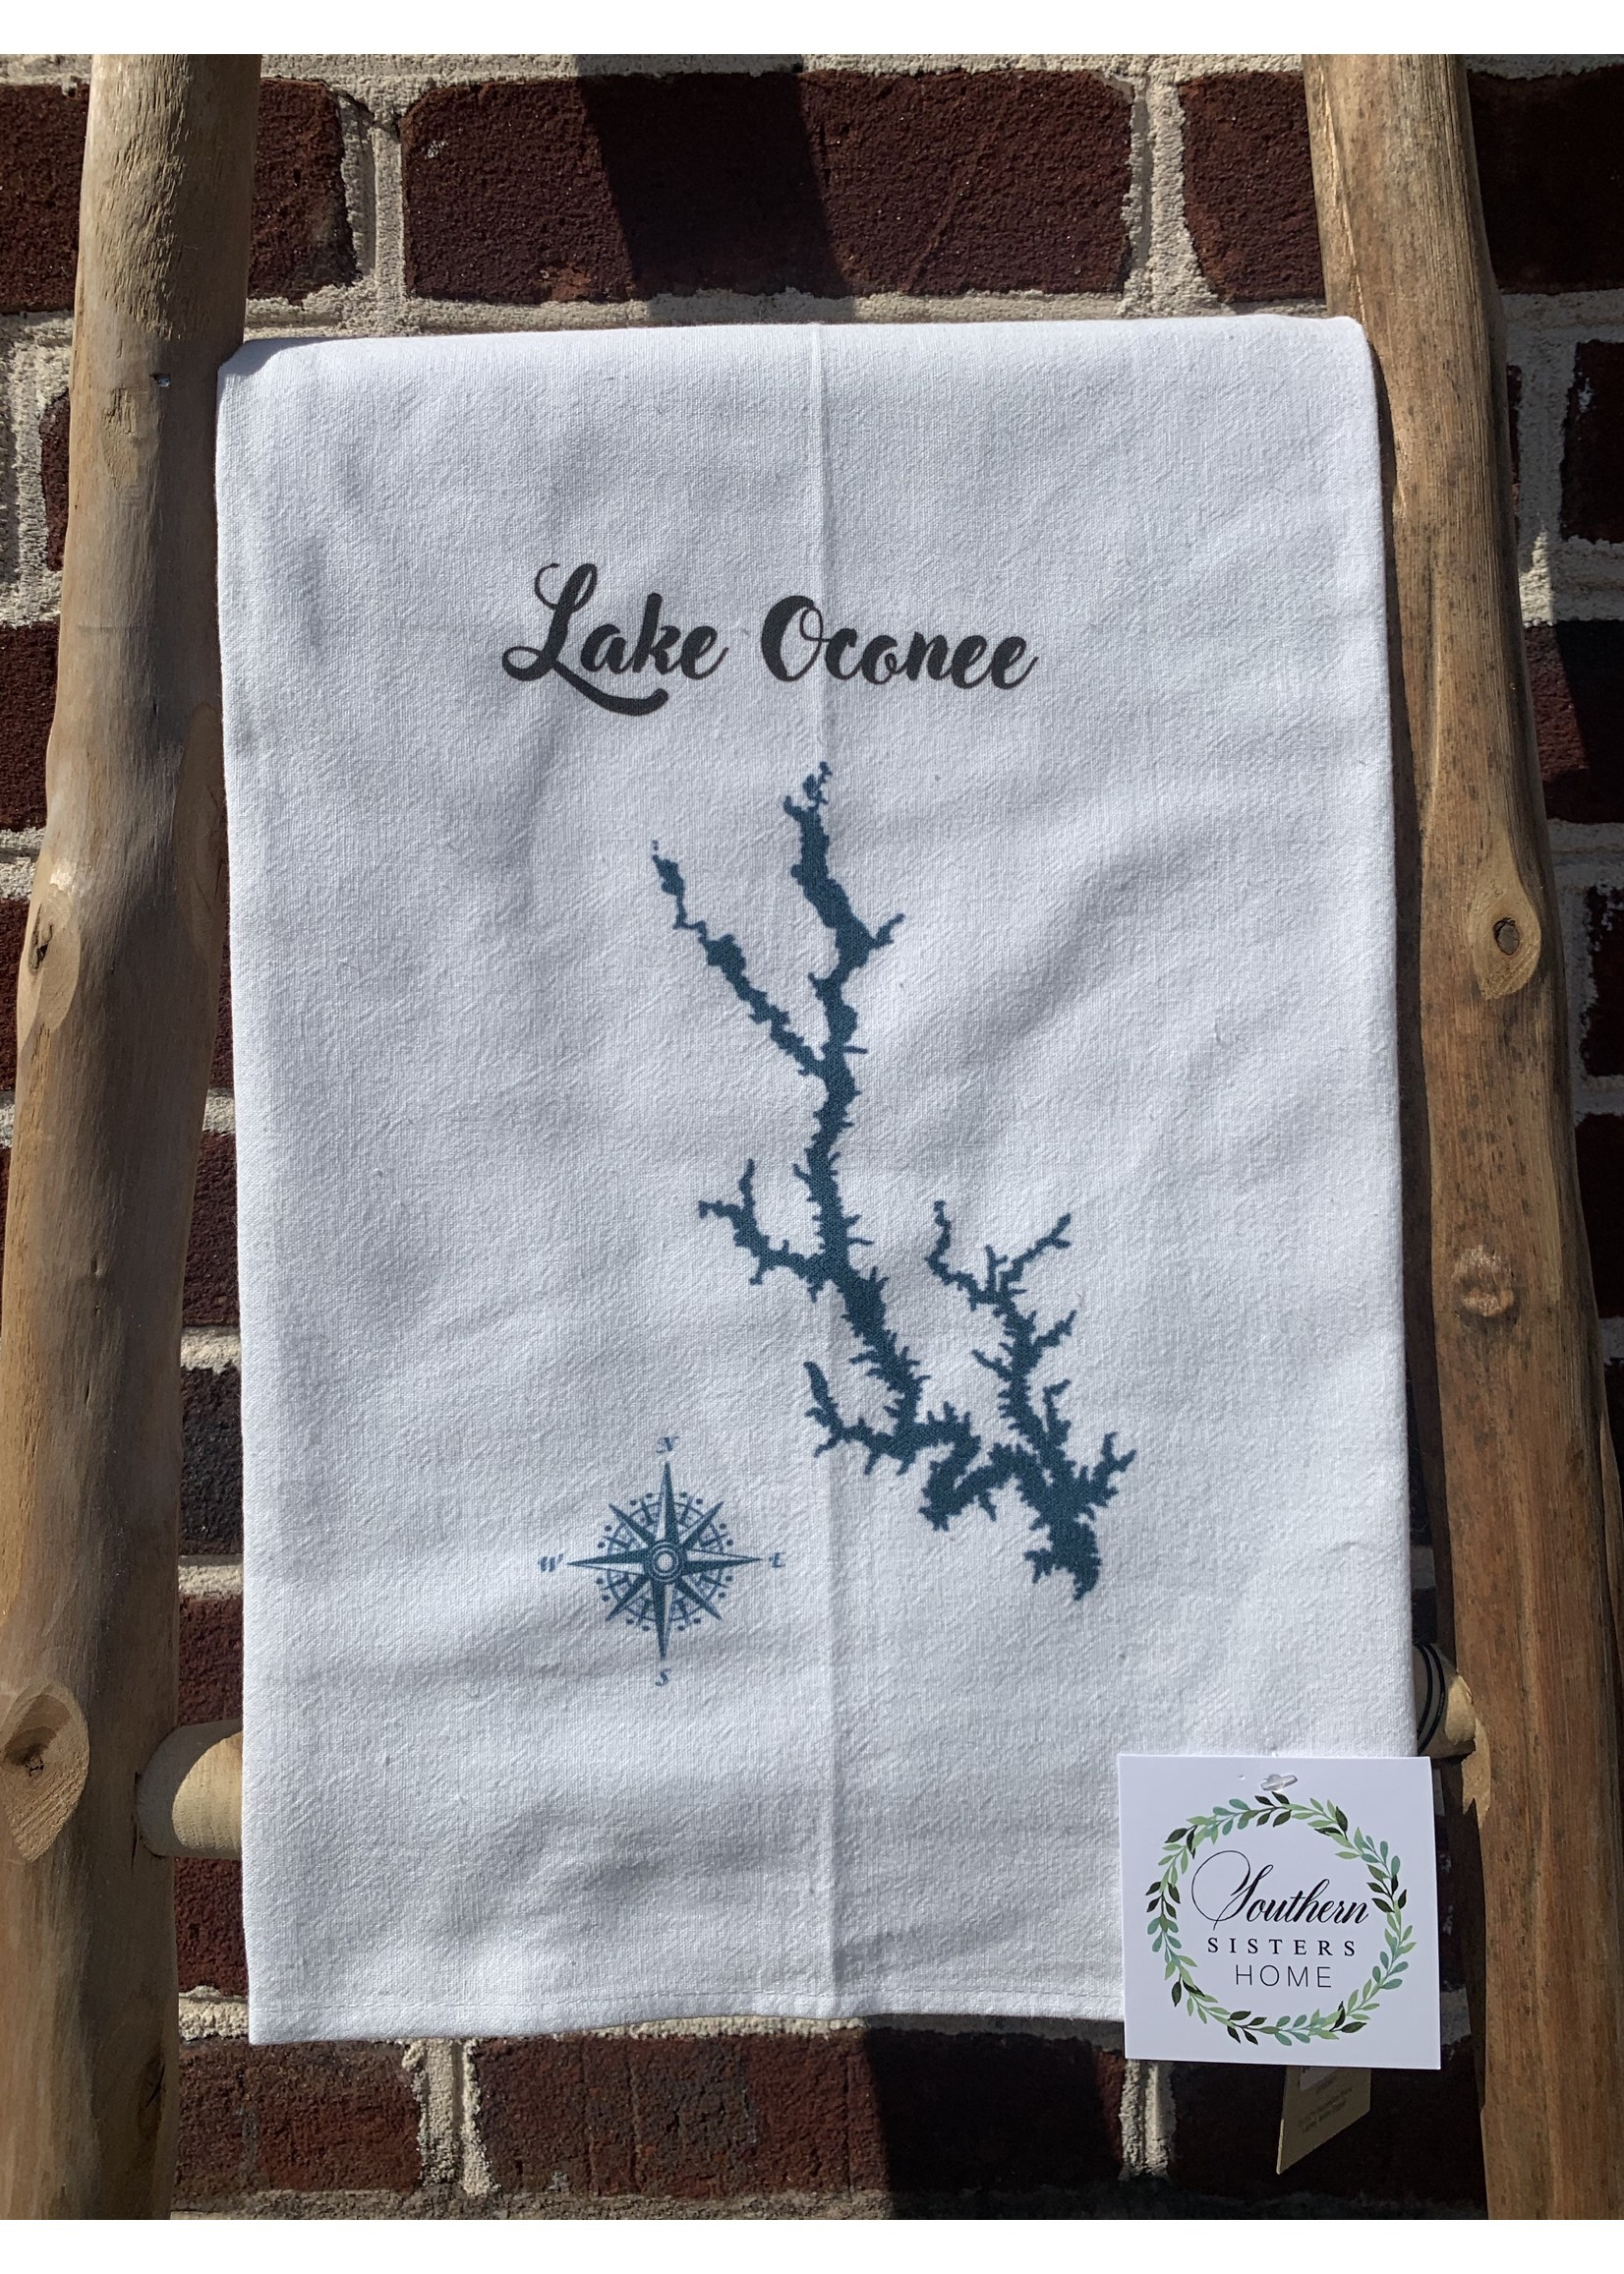 southern sisters Linen Towel Lake Oconee Map